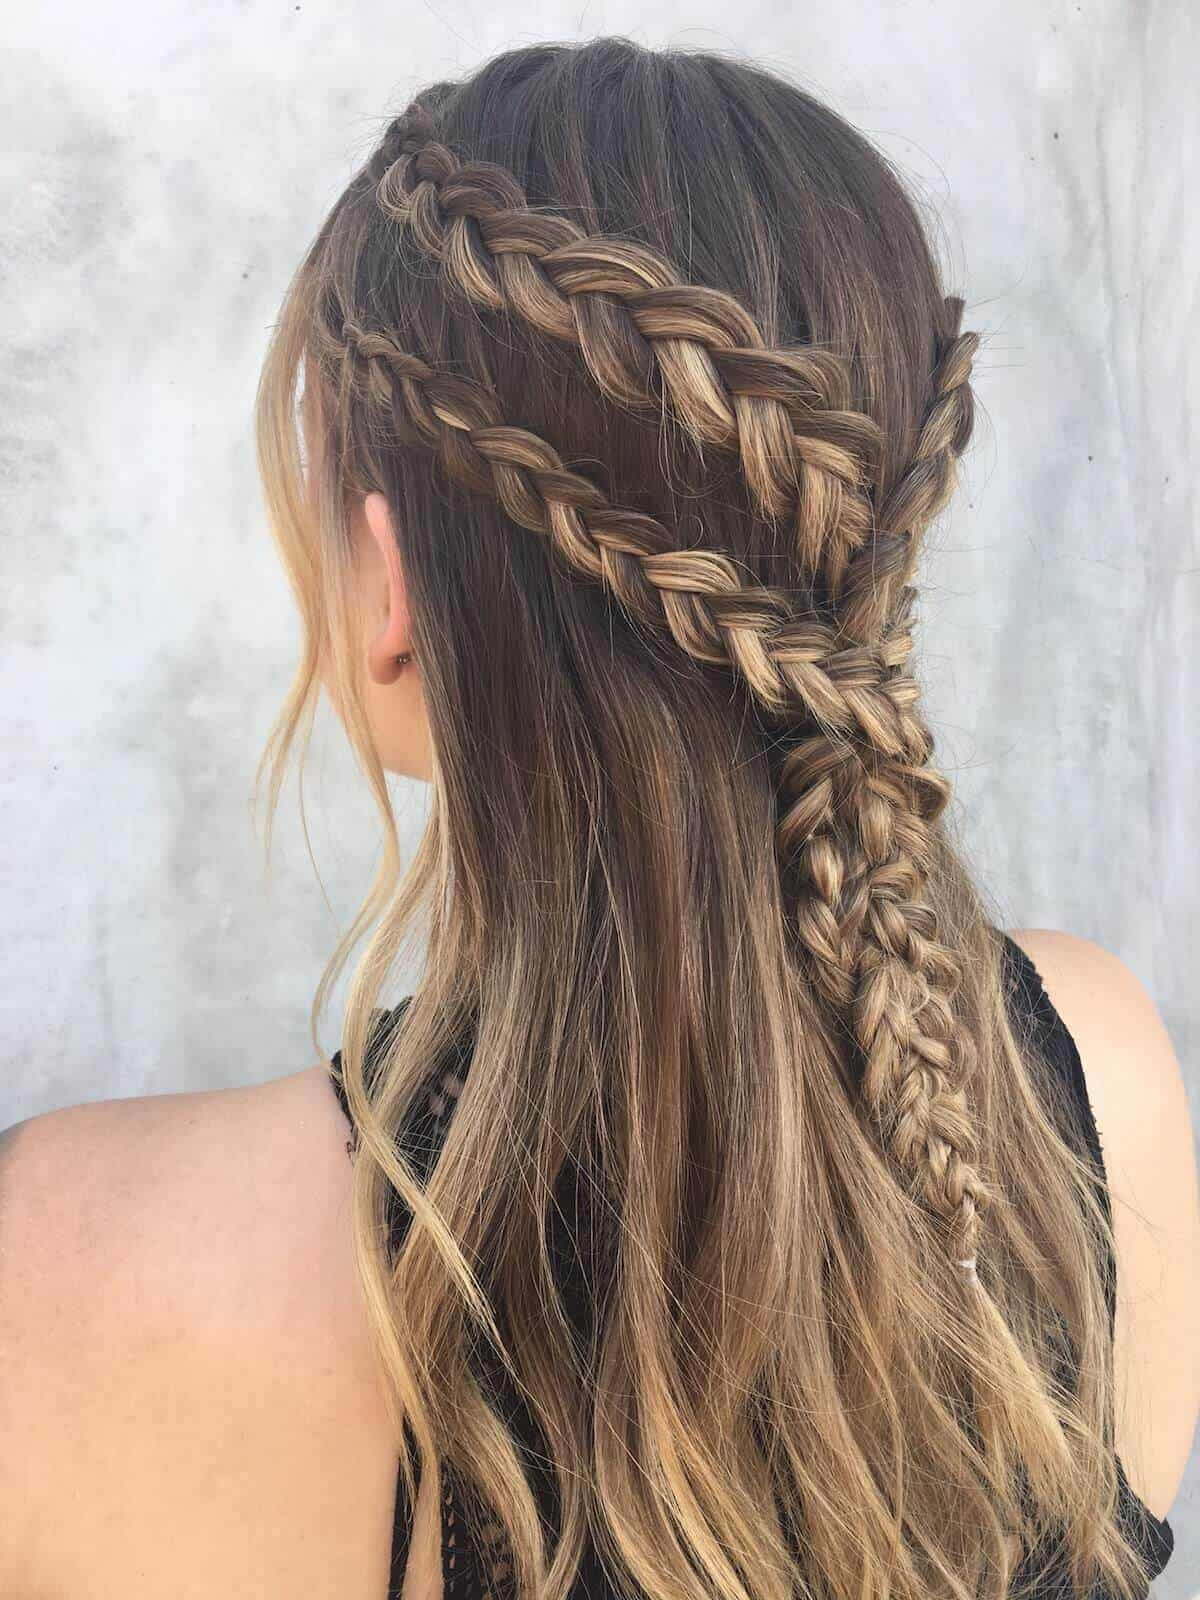 long tumbling braids